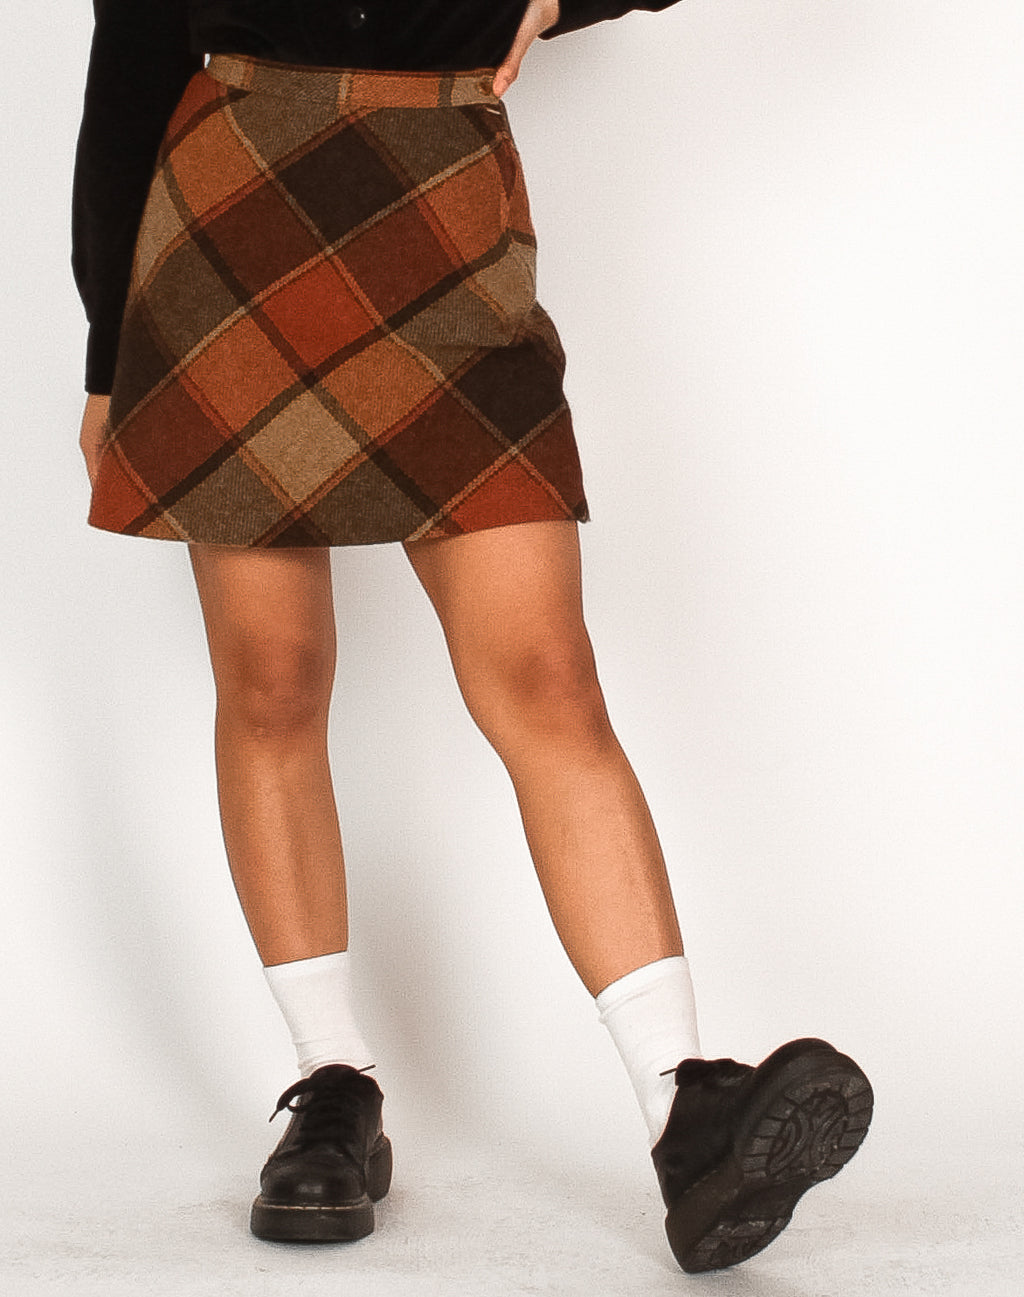 ORANGE PLAID MINI SKIRT